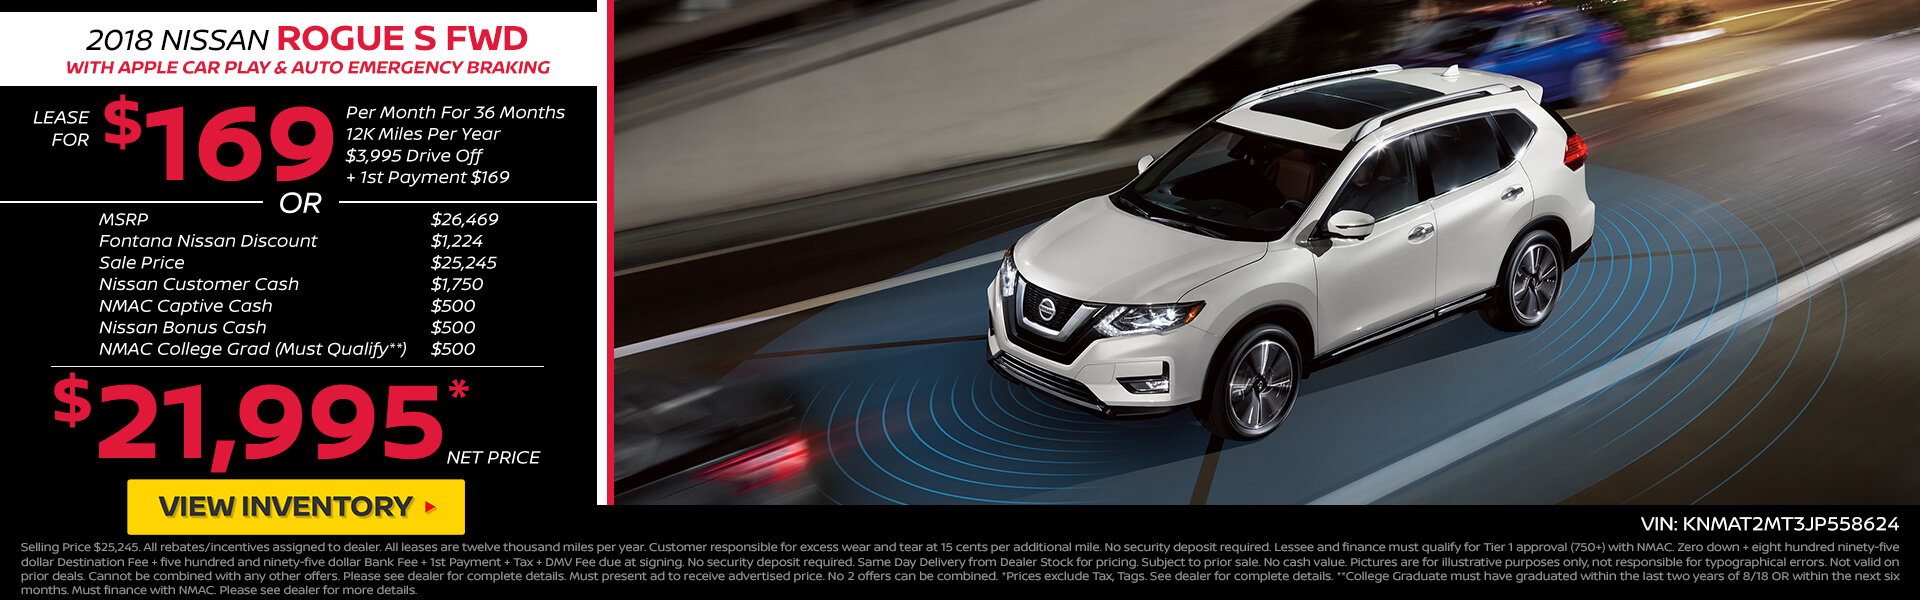 Nissan Rogue $169 Lease or $21,995 Purchase